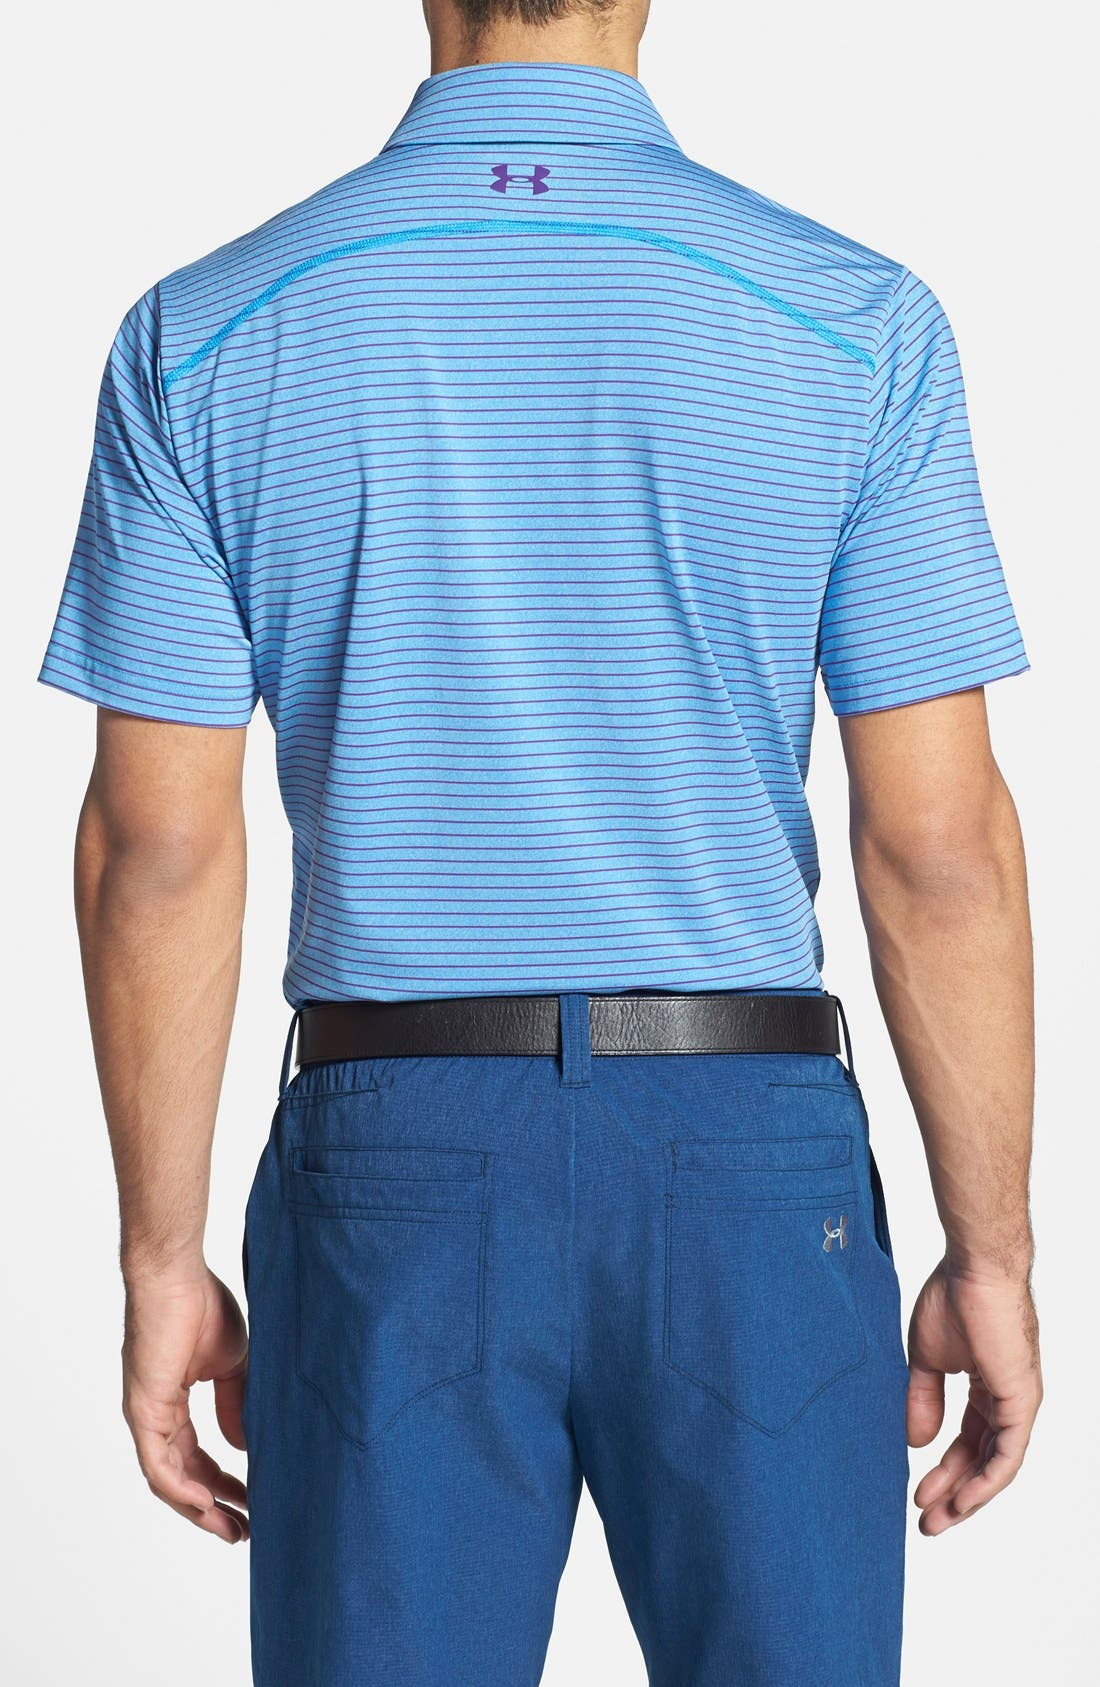 ,                             'Playoff' Loose Fit Short Sleeve Polo,                             Alternate thumbnail 212, color,                             407